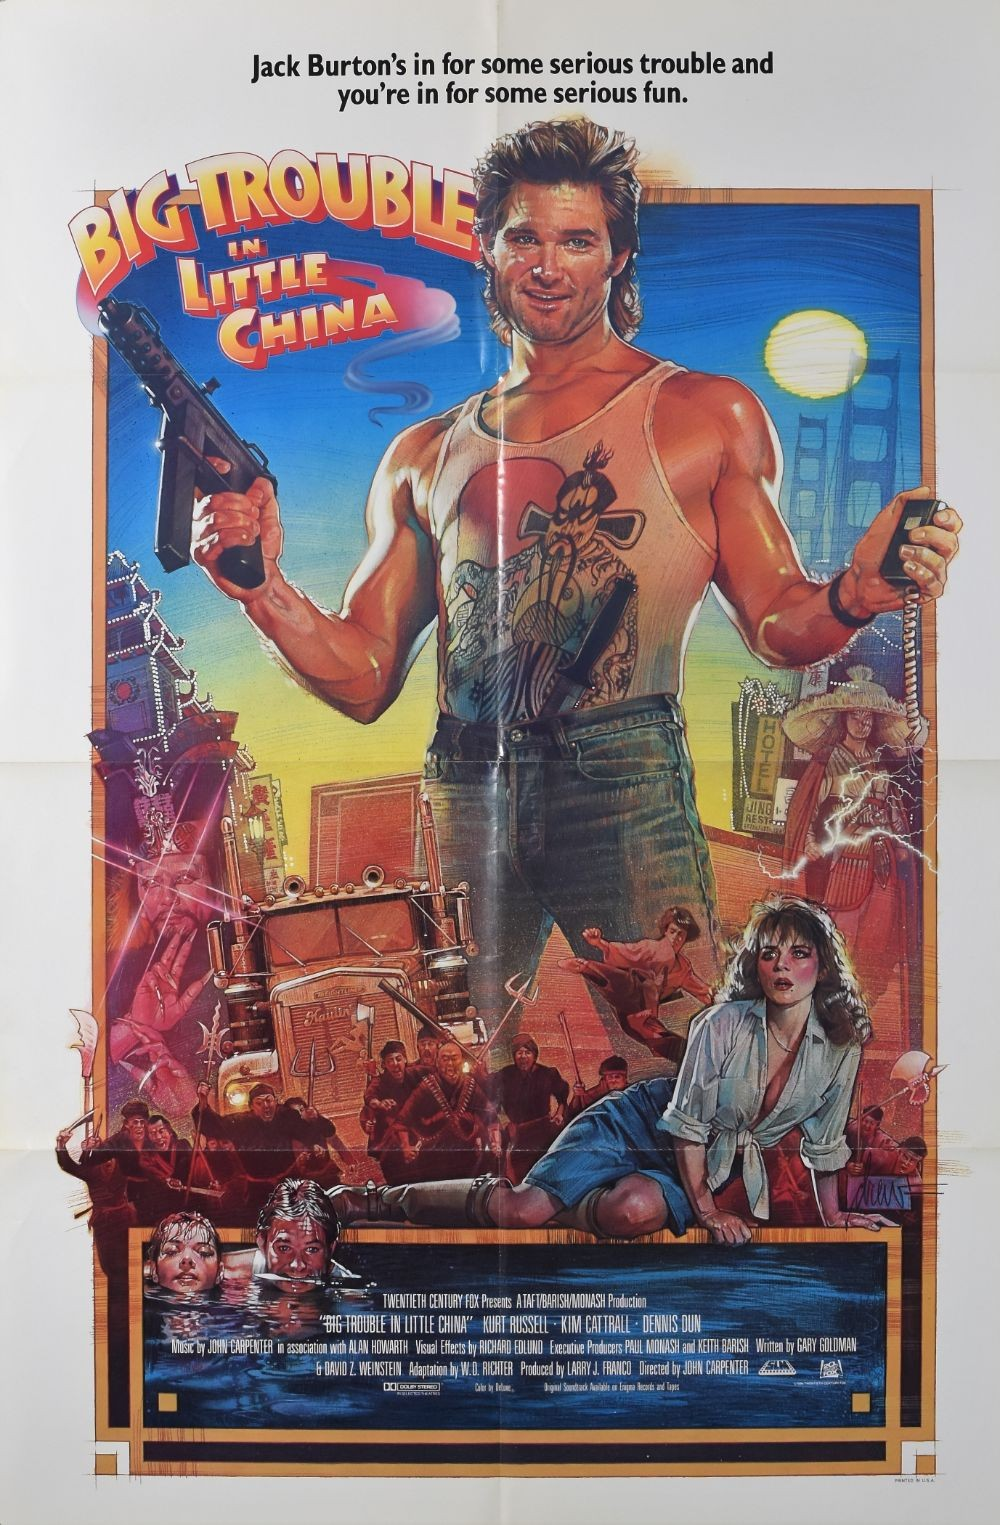 Big Trouble in Little China original movie poster